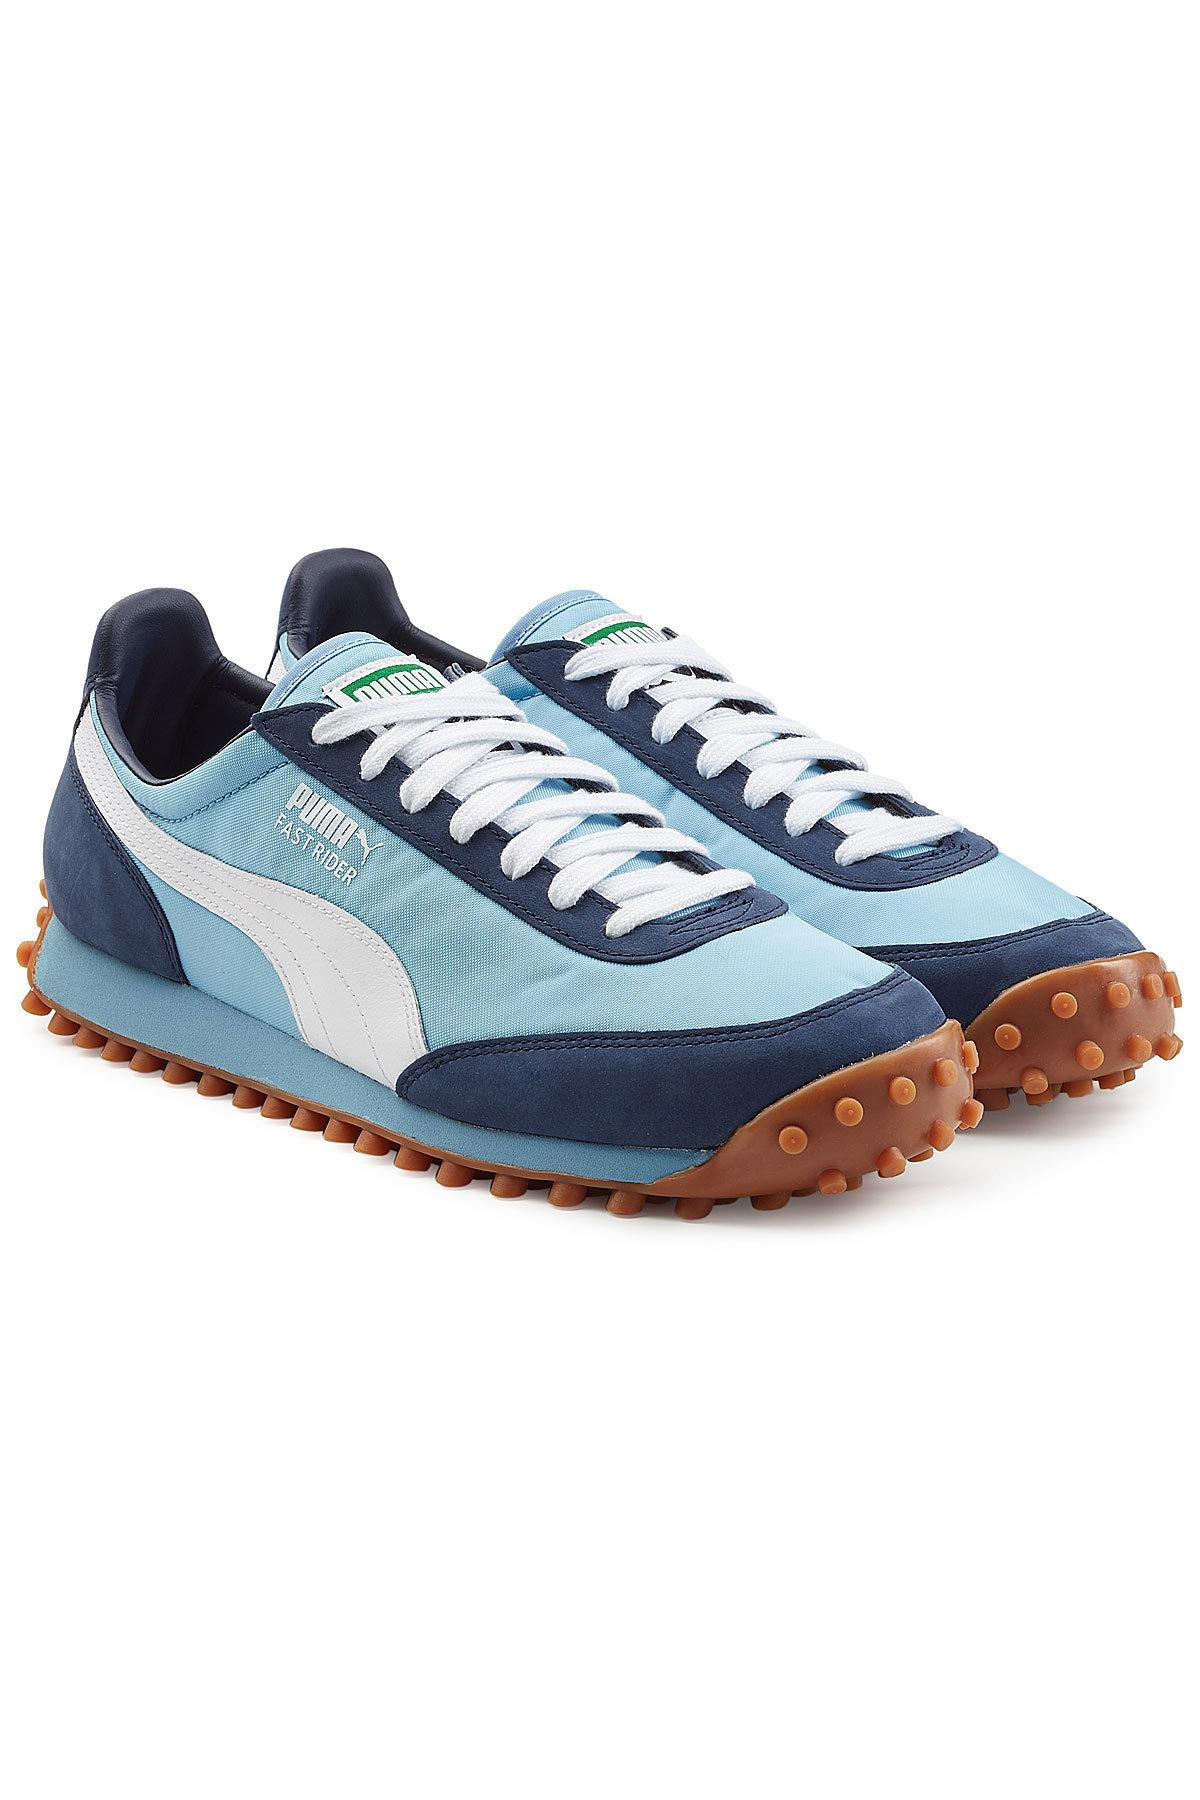 Puma Fast Rider Og Sneakers With Leather In Blue